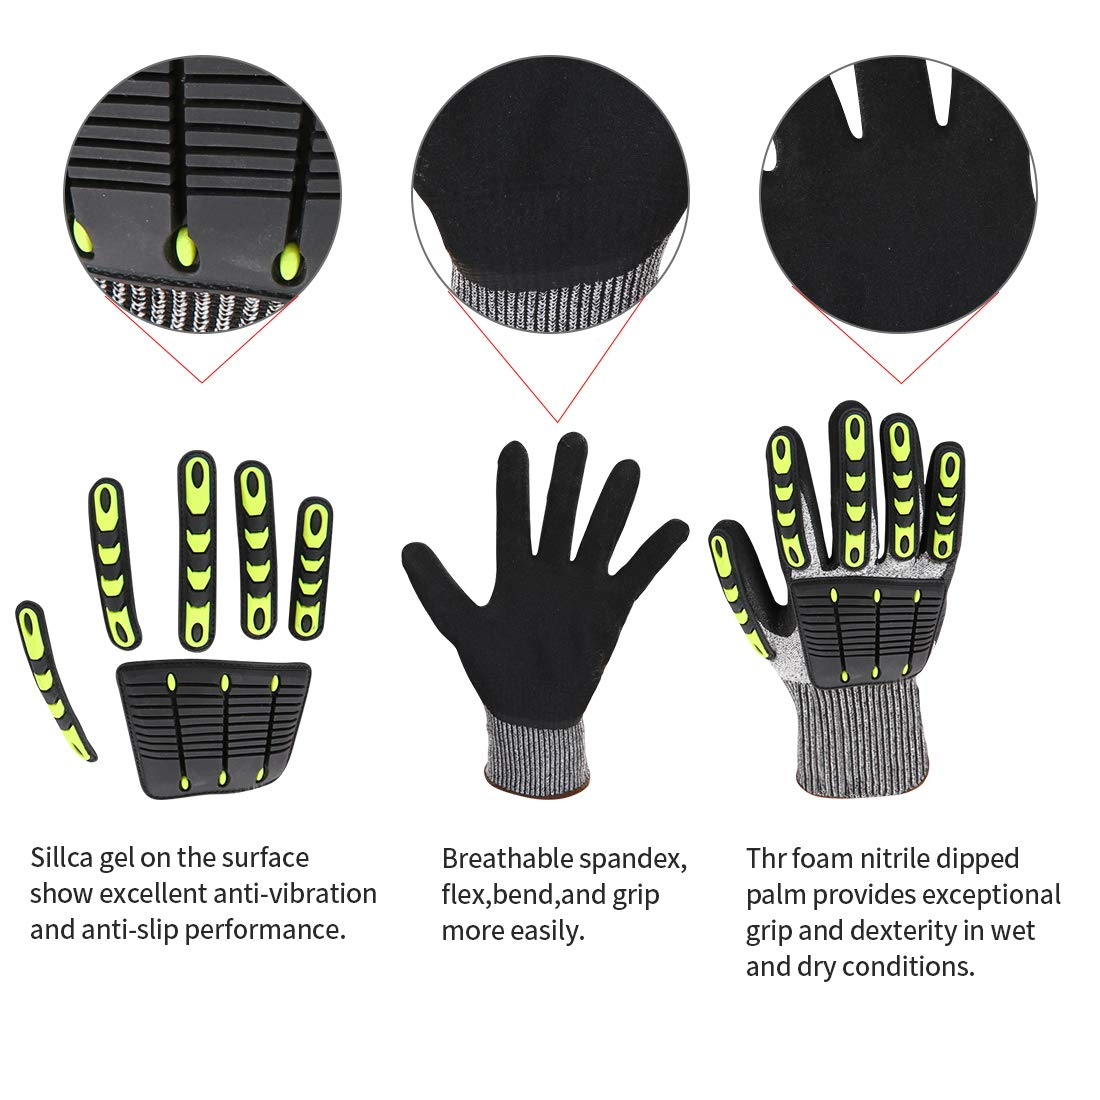 Impact Reducing Safety Gloves, Vibration & Abrasion & Cut Resistant, Ideal for Heavy Duty Safety Work like Mechanic, Garden Construction, Car Repairing Industrial, 1 Pair by KARRISM 4